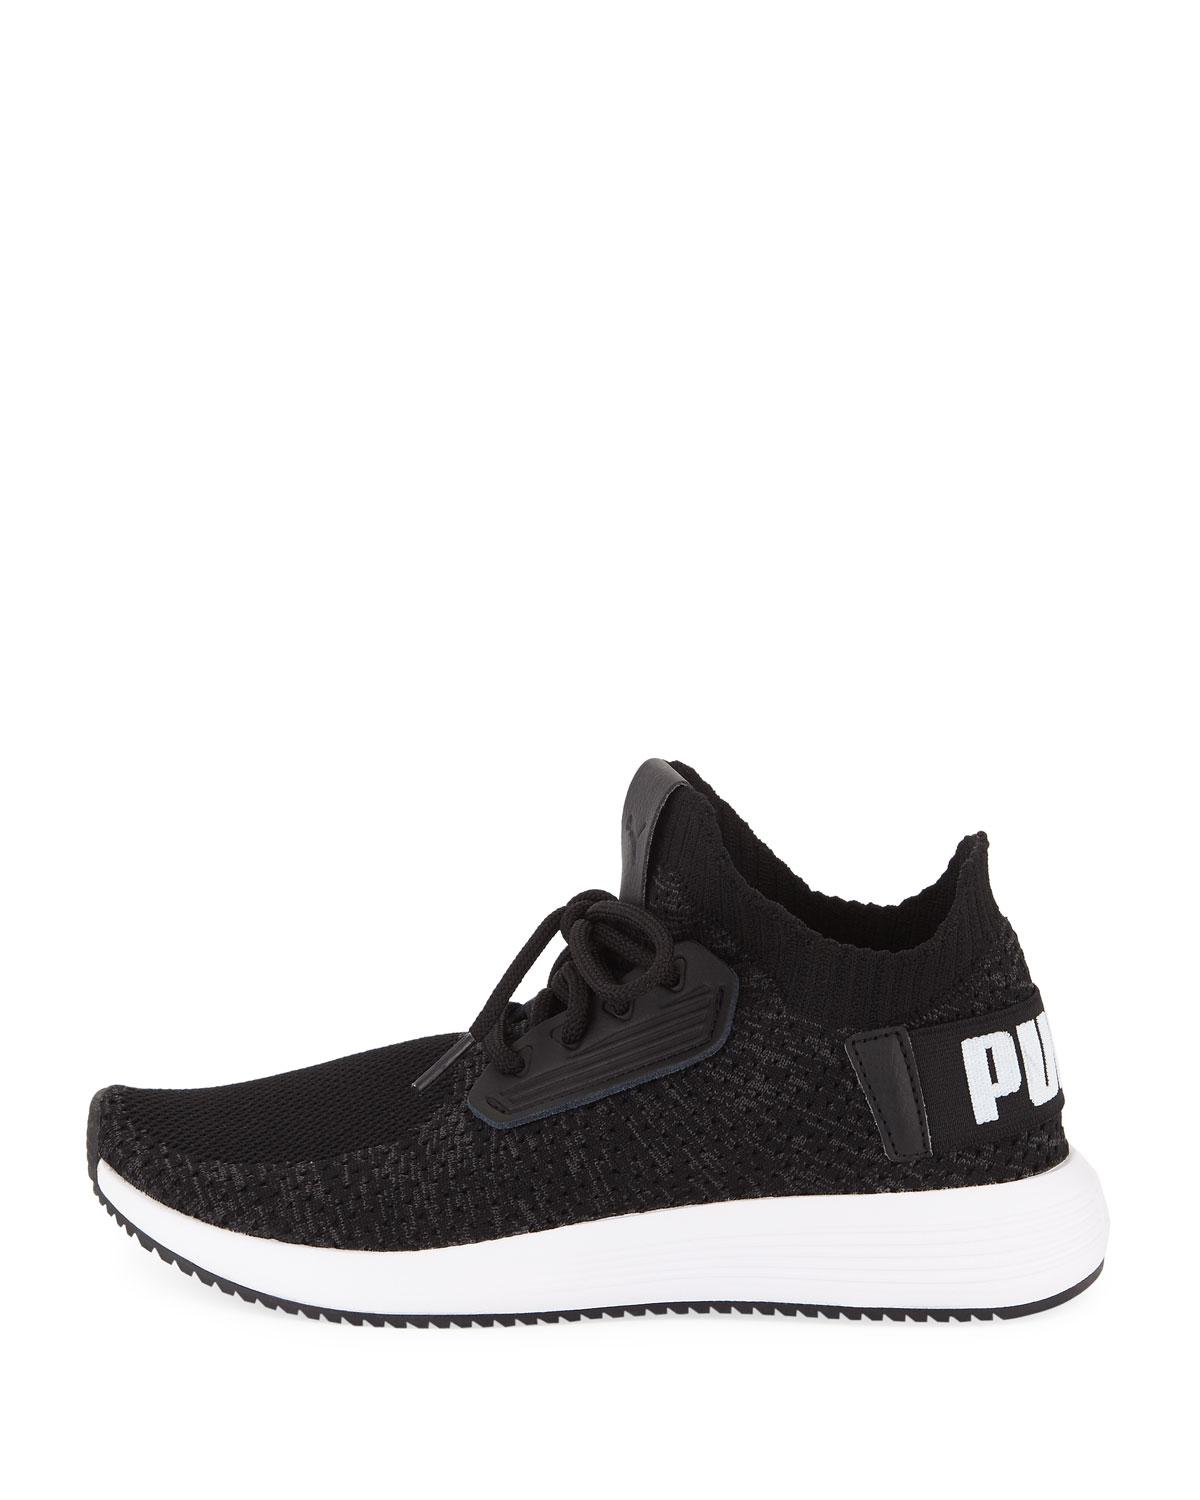 7b9c1f8efe3 Lyst - Puma Uprise Knit Lace-up Sneakers in Black for Men